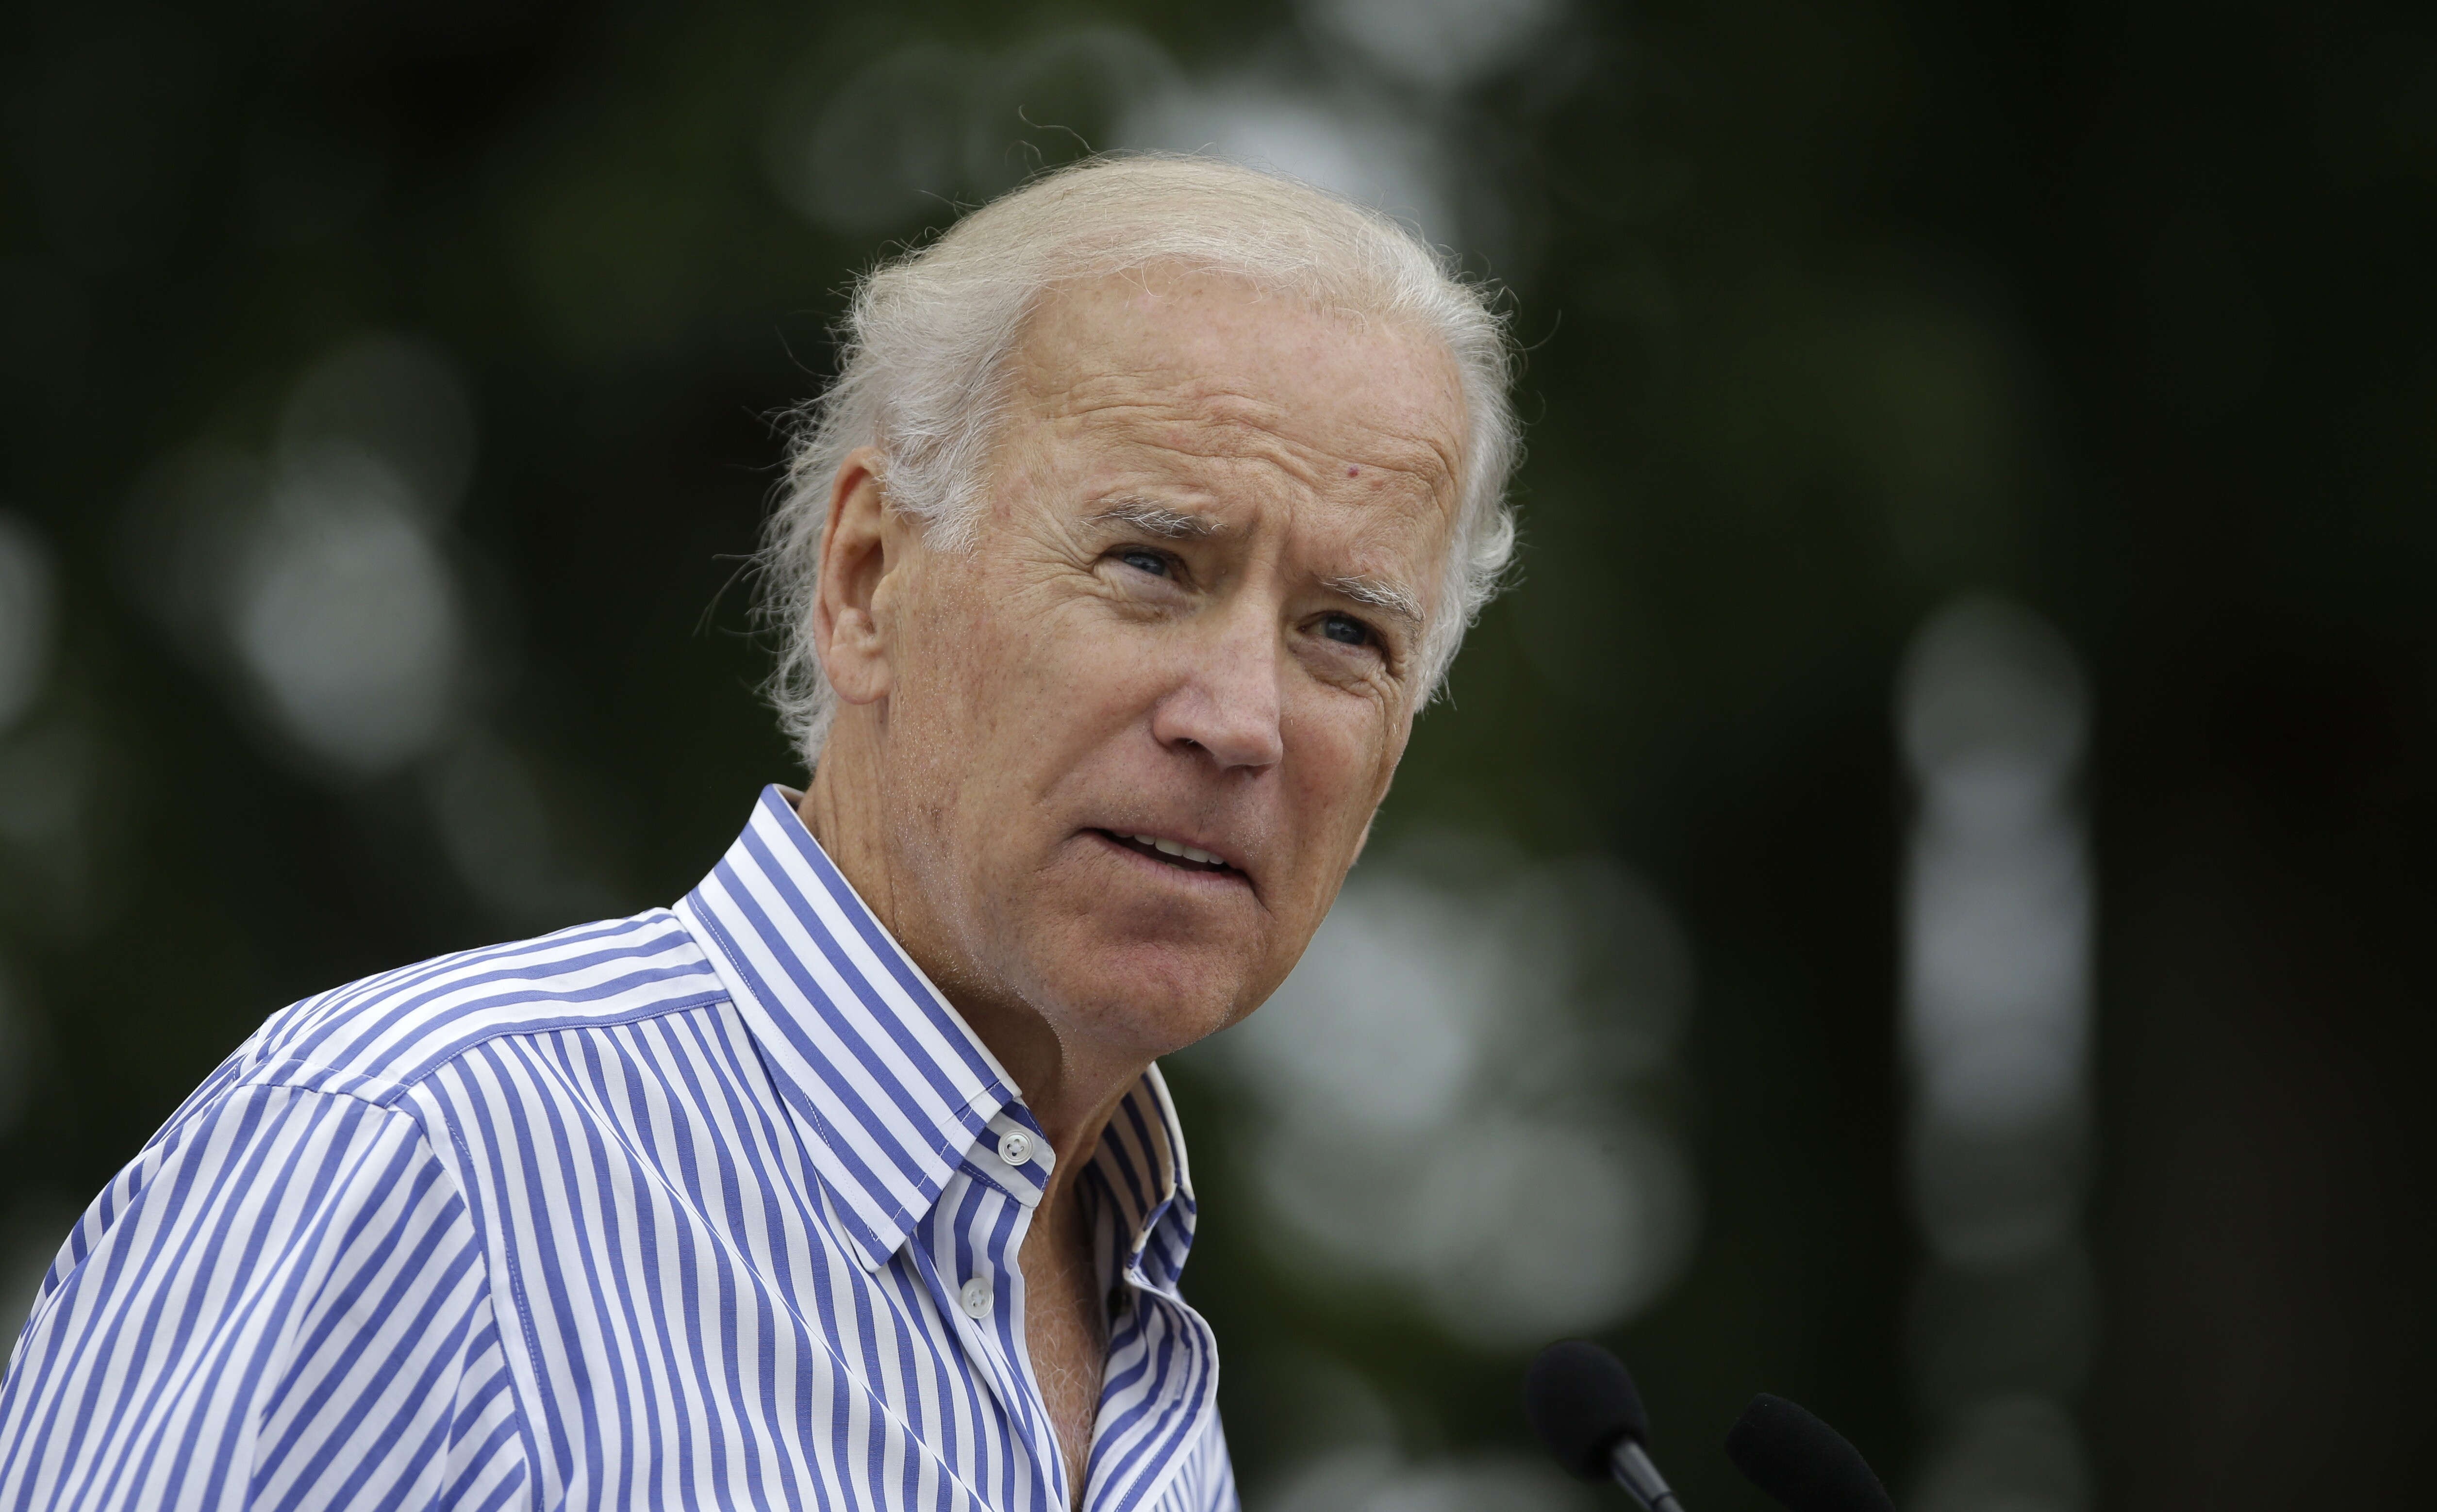 Biden puts family tragedy at center of 2020 campaign despite condemning 'tasteless' approach four years ago